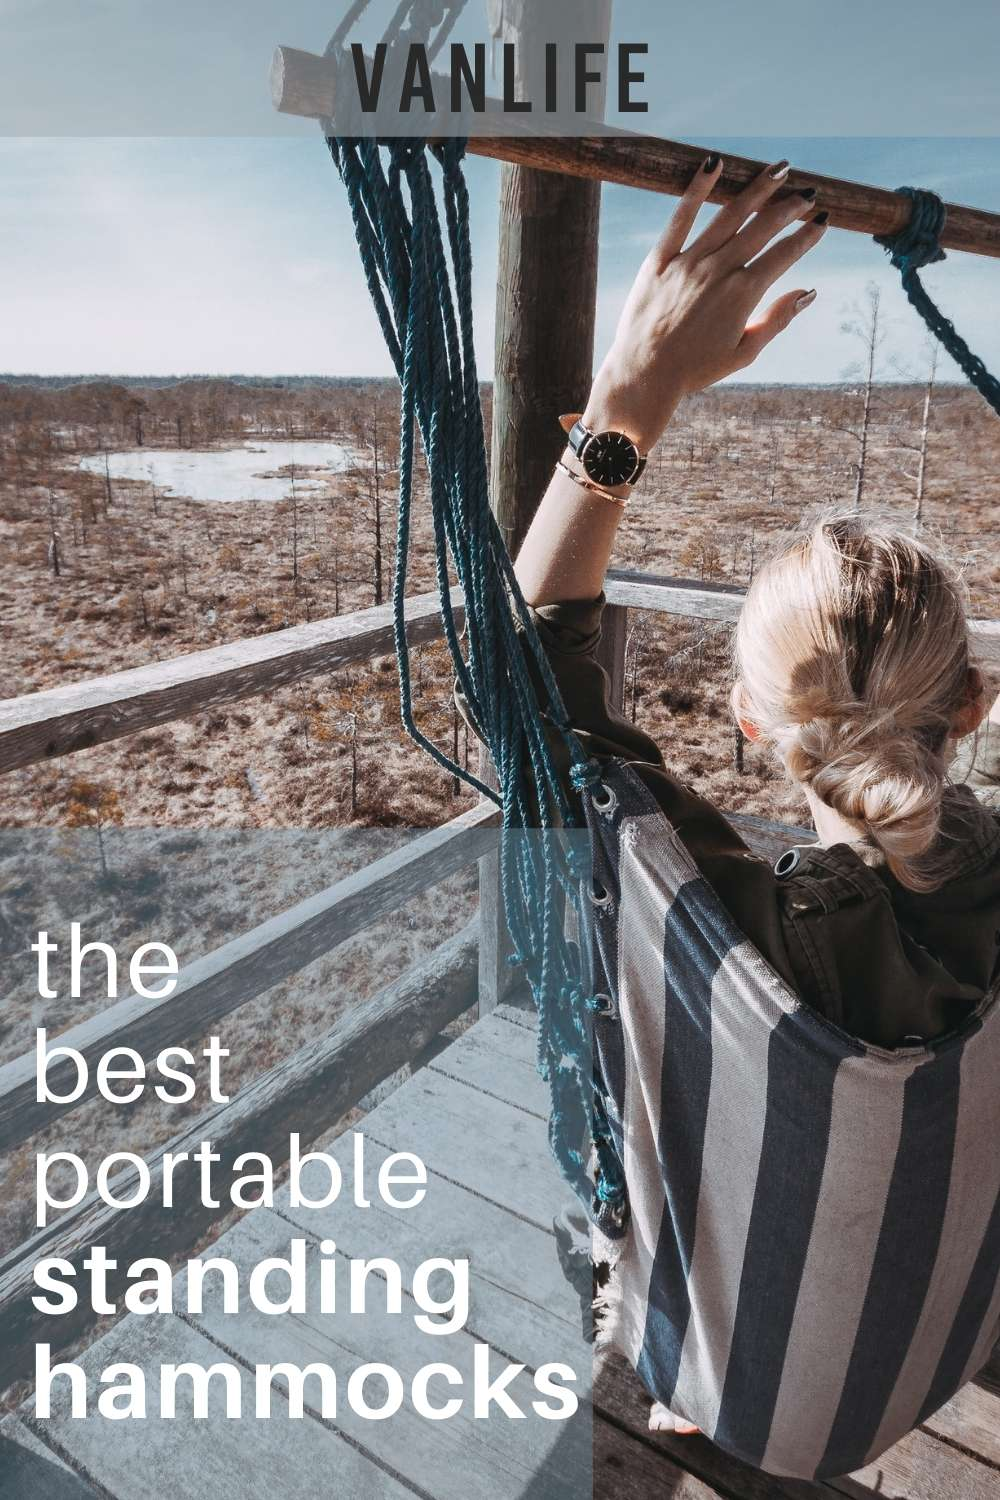 Portable Hammock Stands for Van Life and Hammock Camping on Pinterest